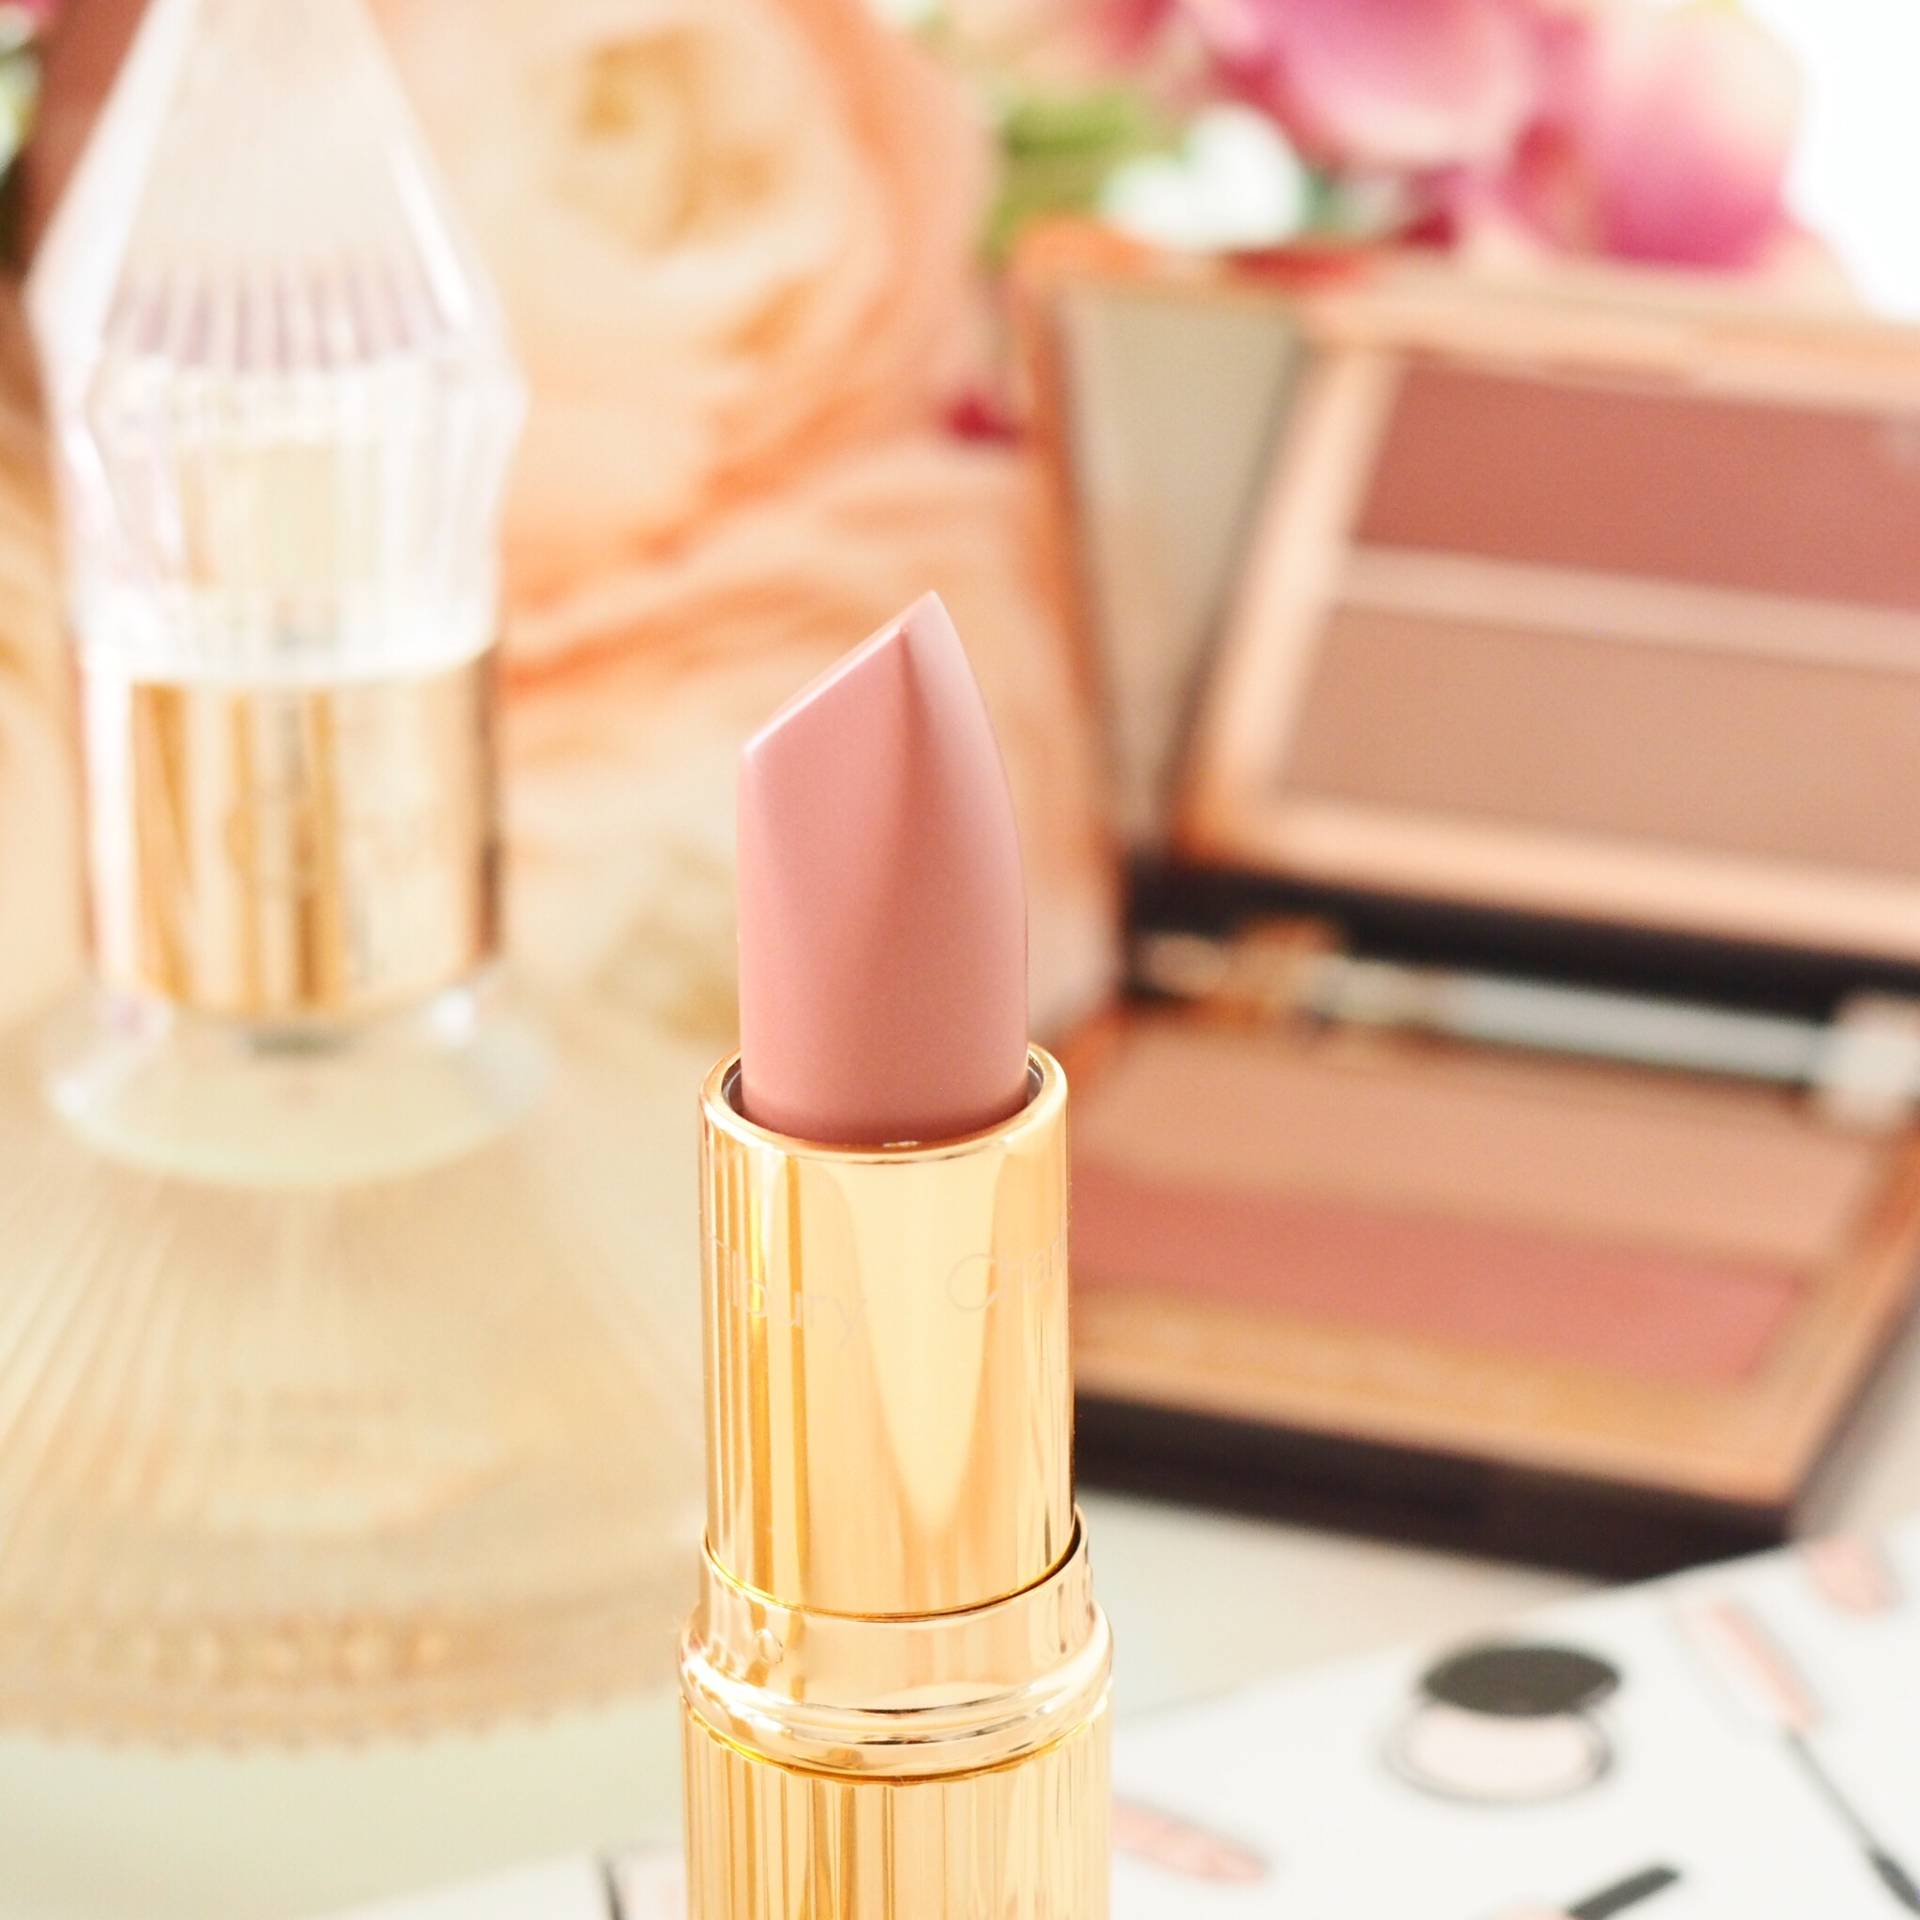 Charlotte Tilbury Miss Kensington Review